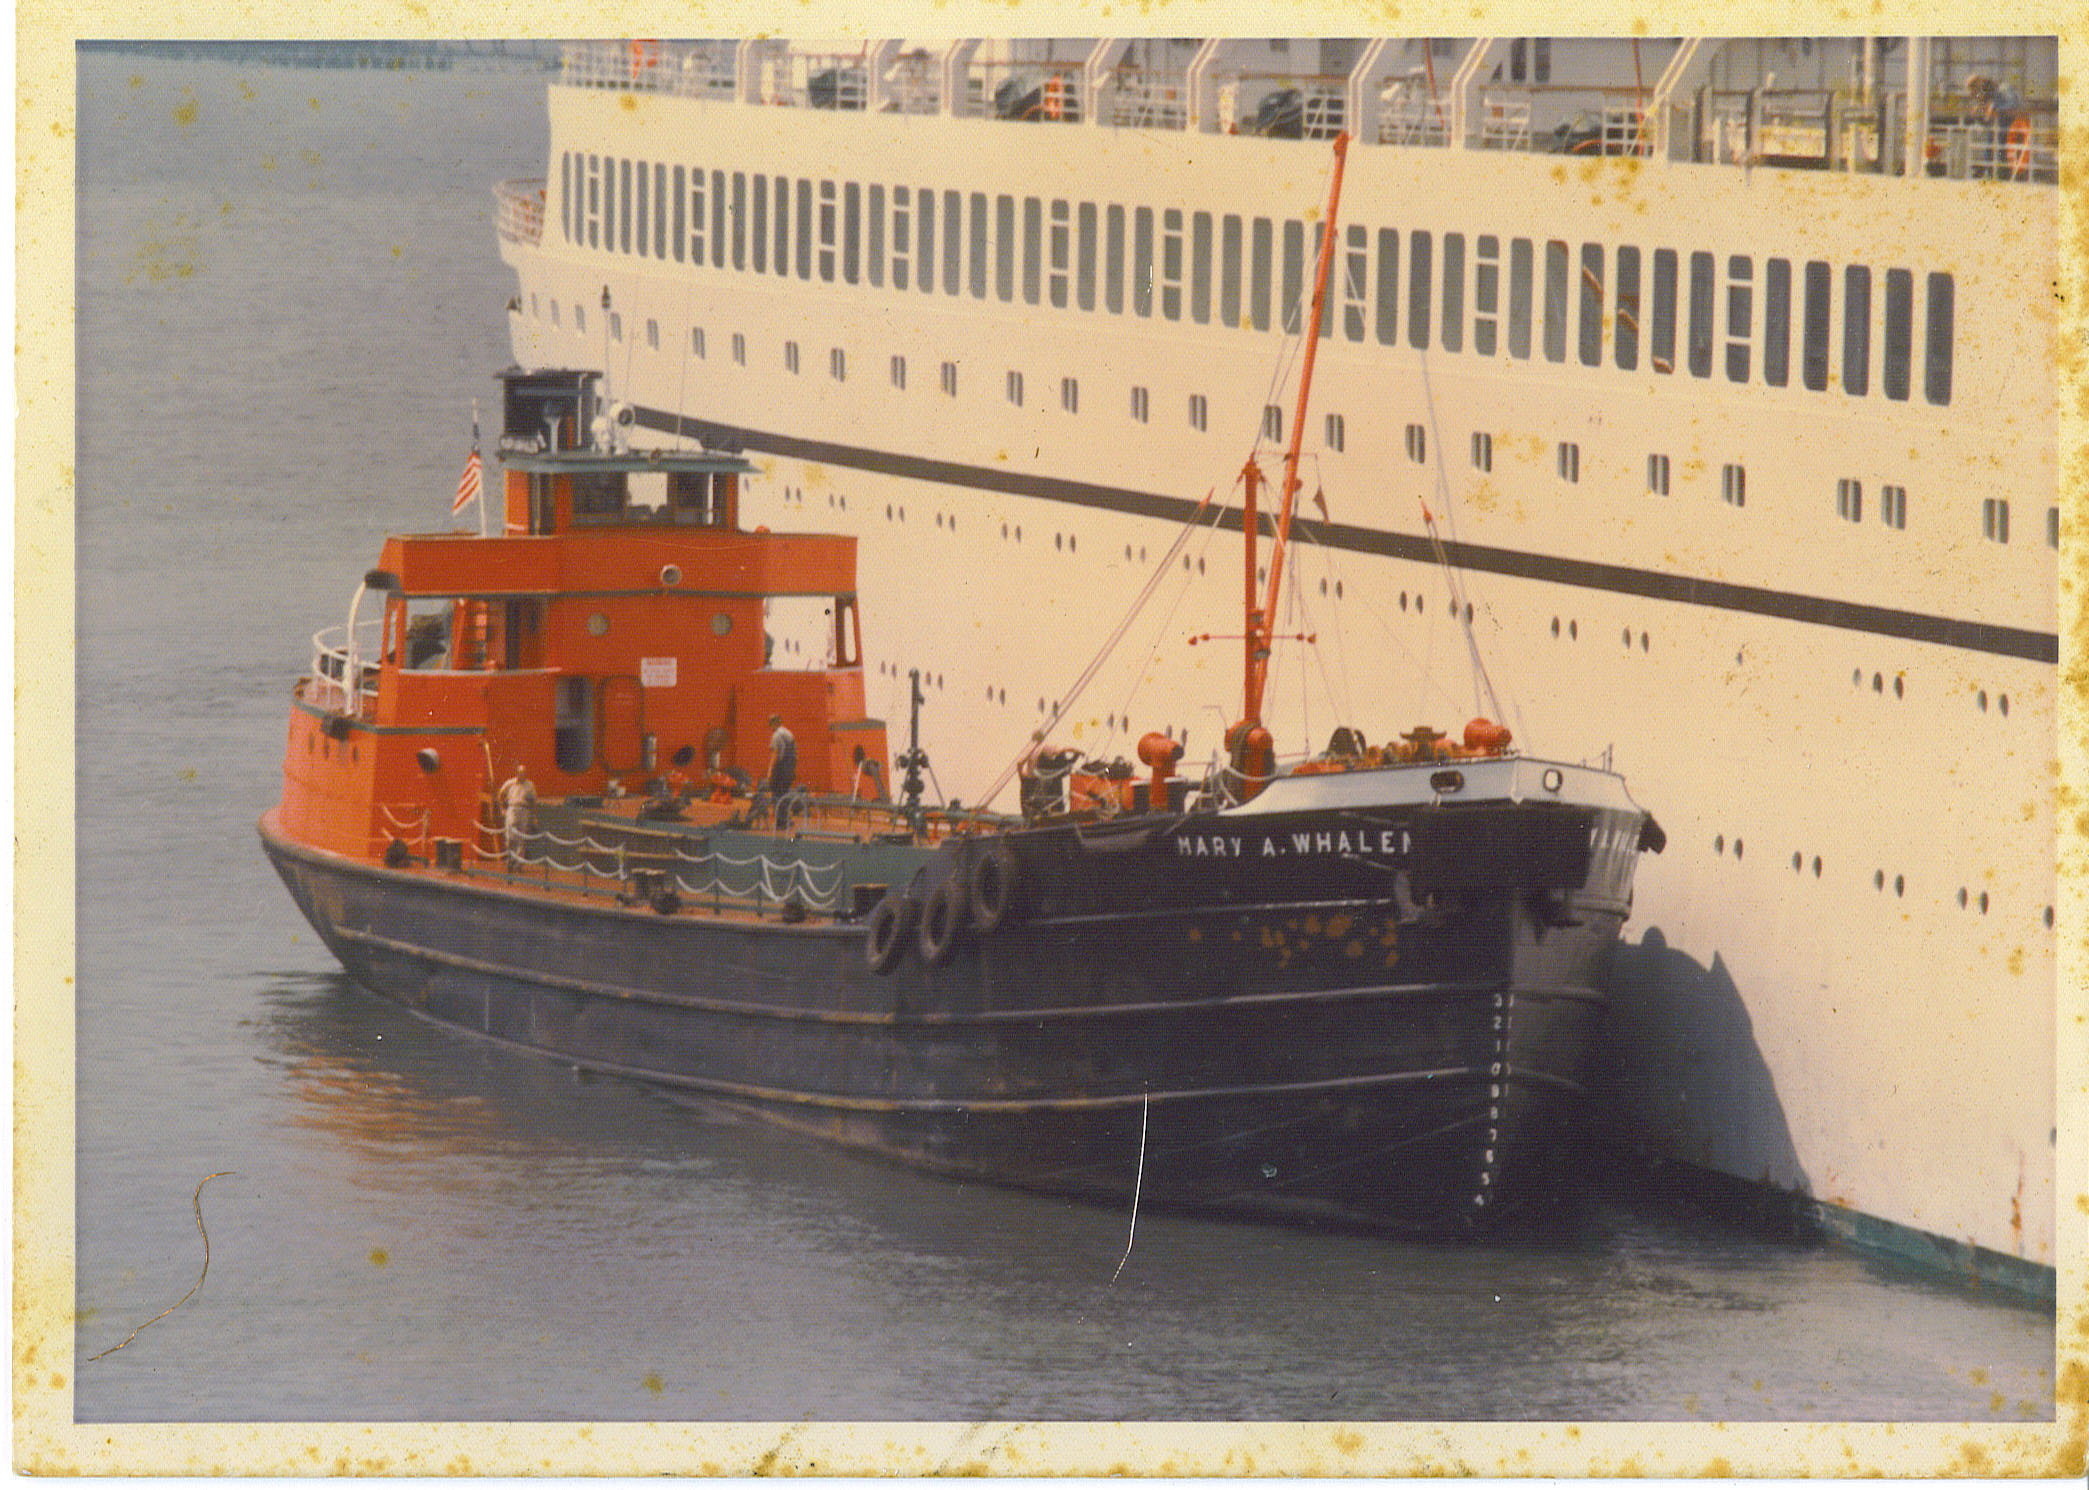 Tanker MARY A. WHALEN fueling a cruise ship back in the day. Photo by Bill Henry